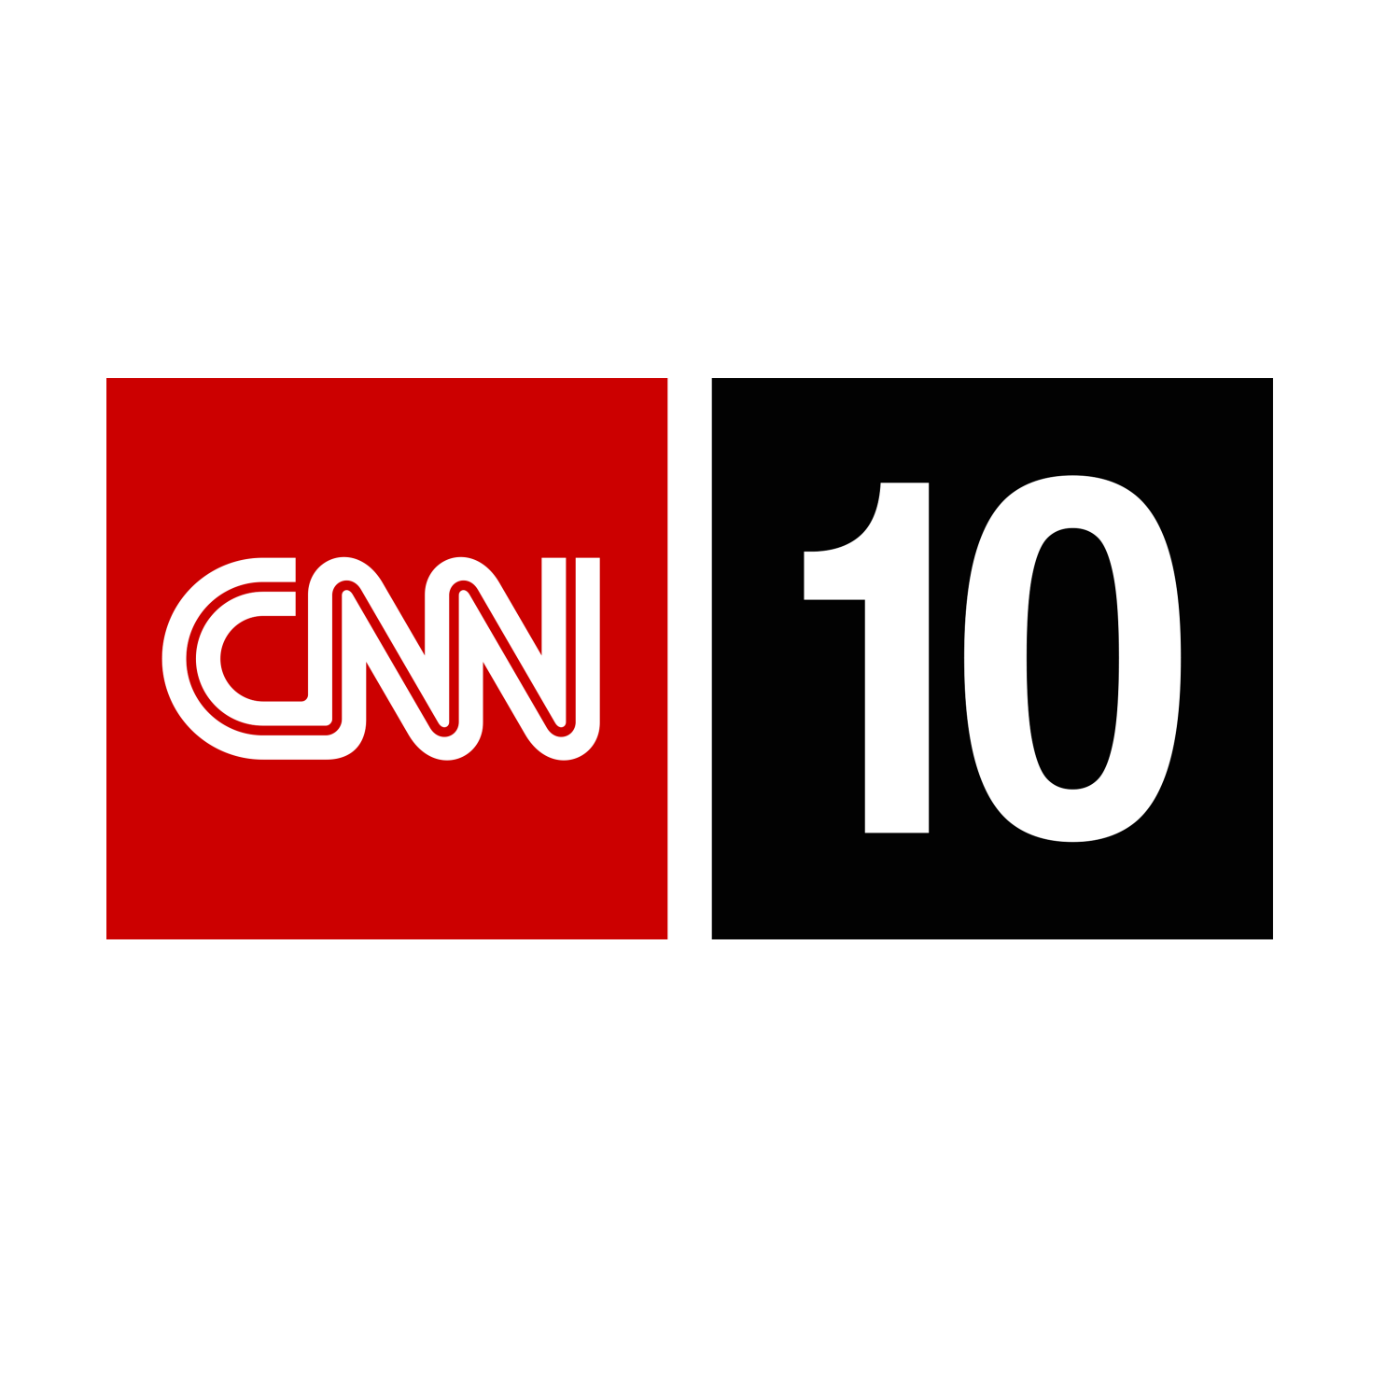 CNN Student News - October 8, 2012